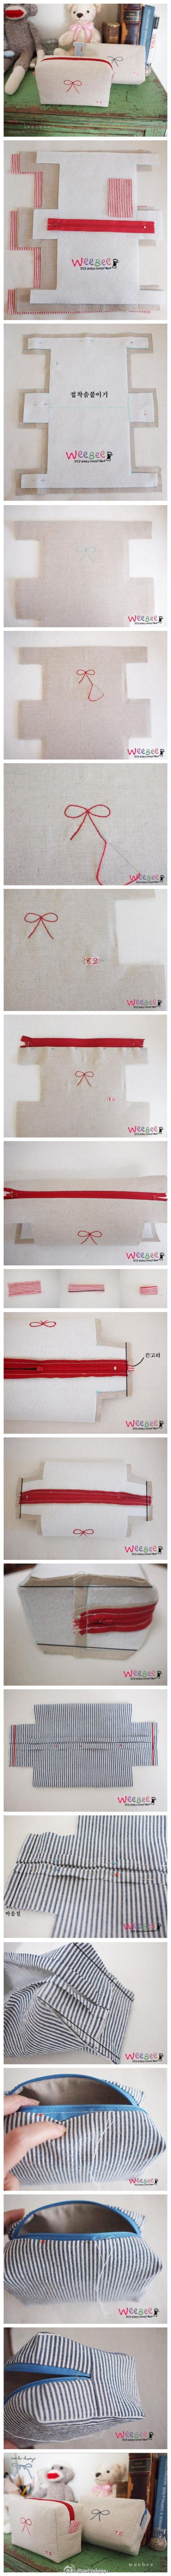 purse tutorial. Follow me for more...